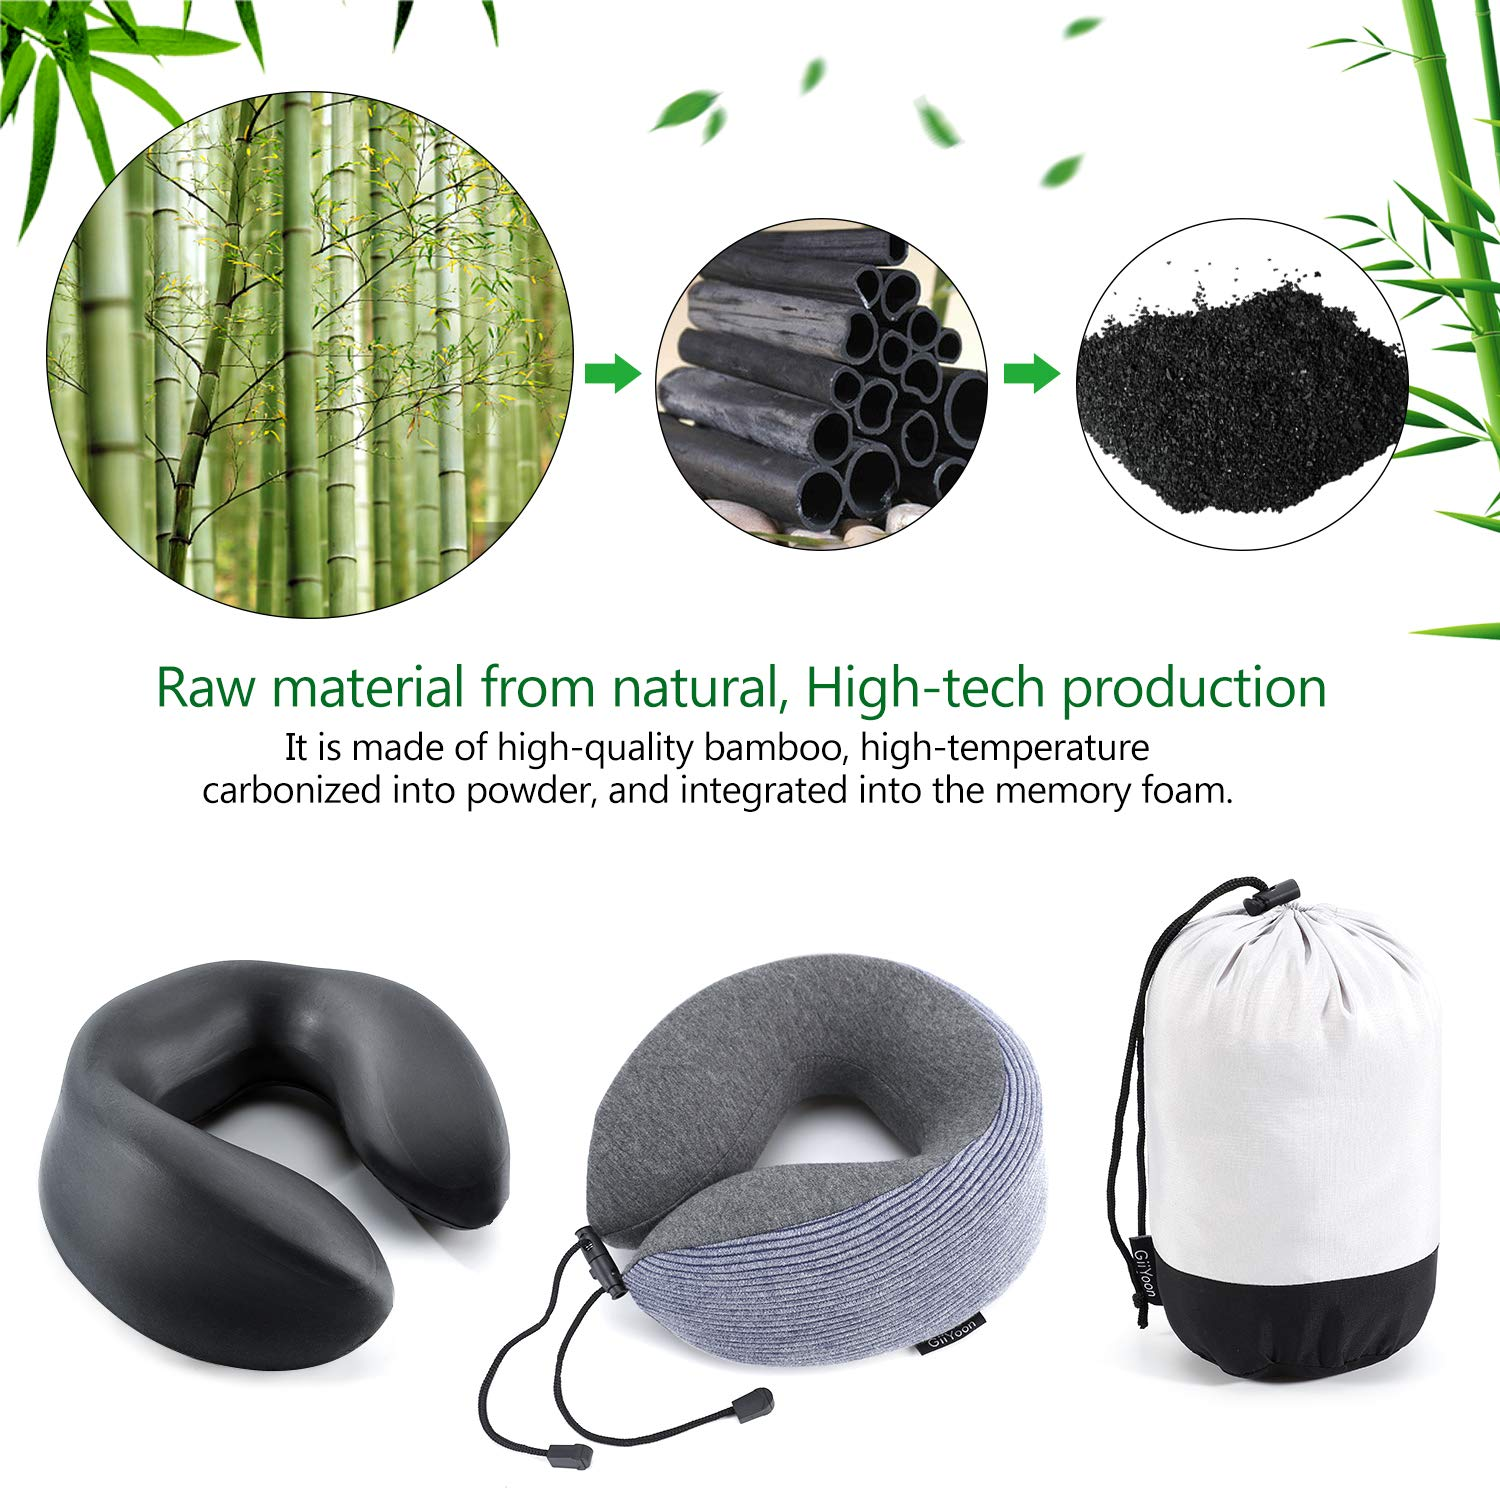 Soft and Comfortable U-Shape Neck Pillow for Airplane Travel Ergonomic Design can 360/° Support Head,Neck and Chin Black Upgraded Bamboo Charcoal Memory Foam Pillow Core GiiYoon Travel Pillow